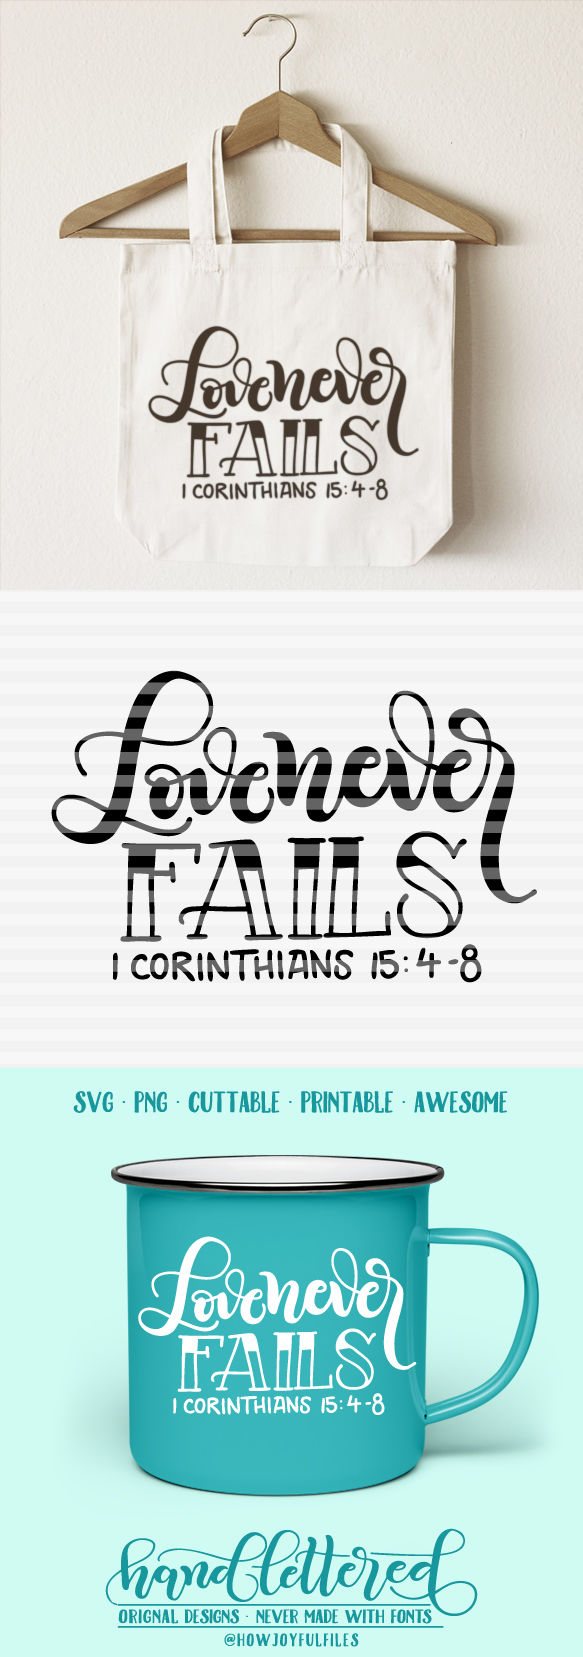 Love Never Fails Svg Dxf Pdf Hand Drawn Lettered Cut File By Howjoyful Files Thehungryjpeg Com